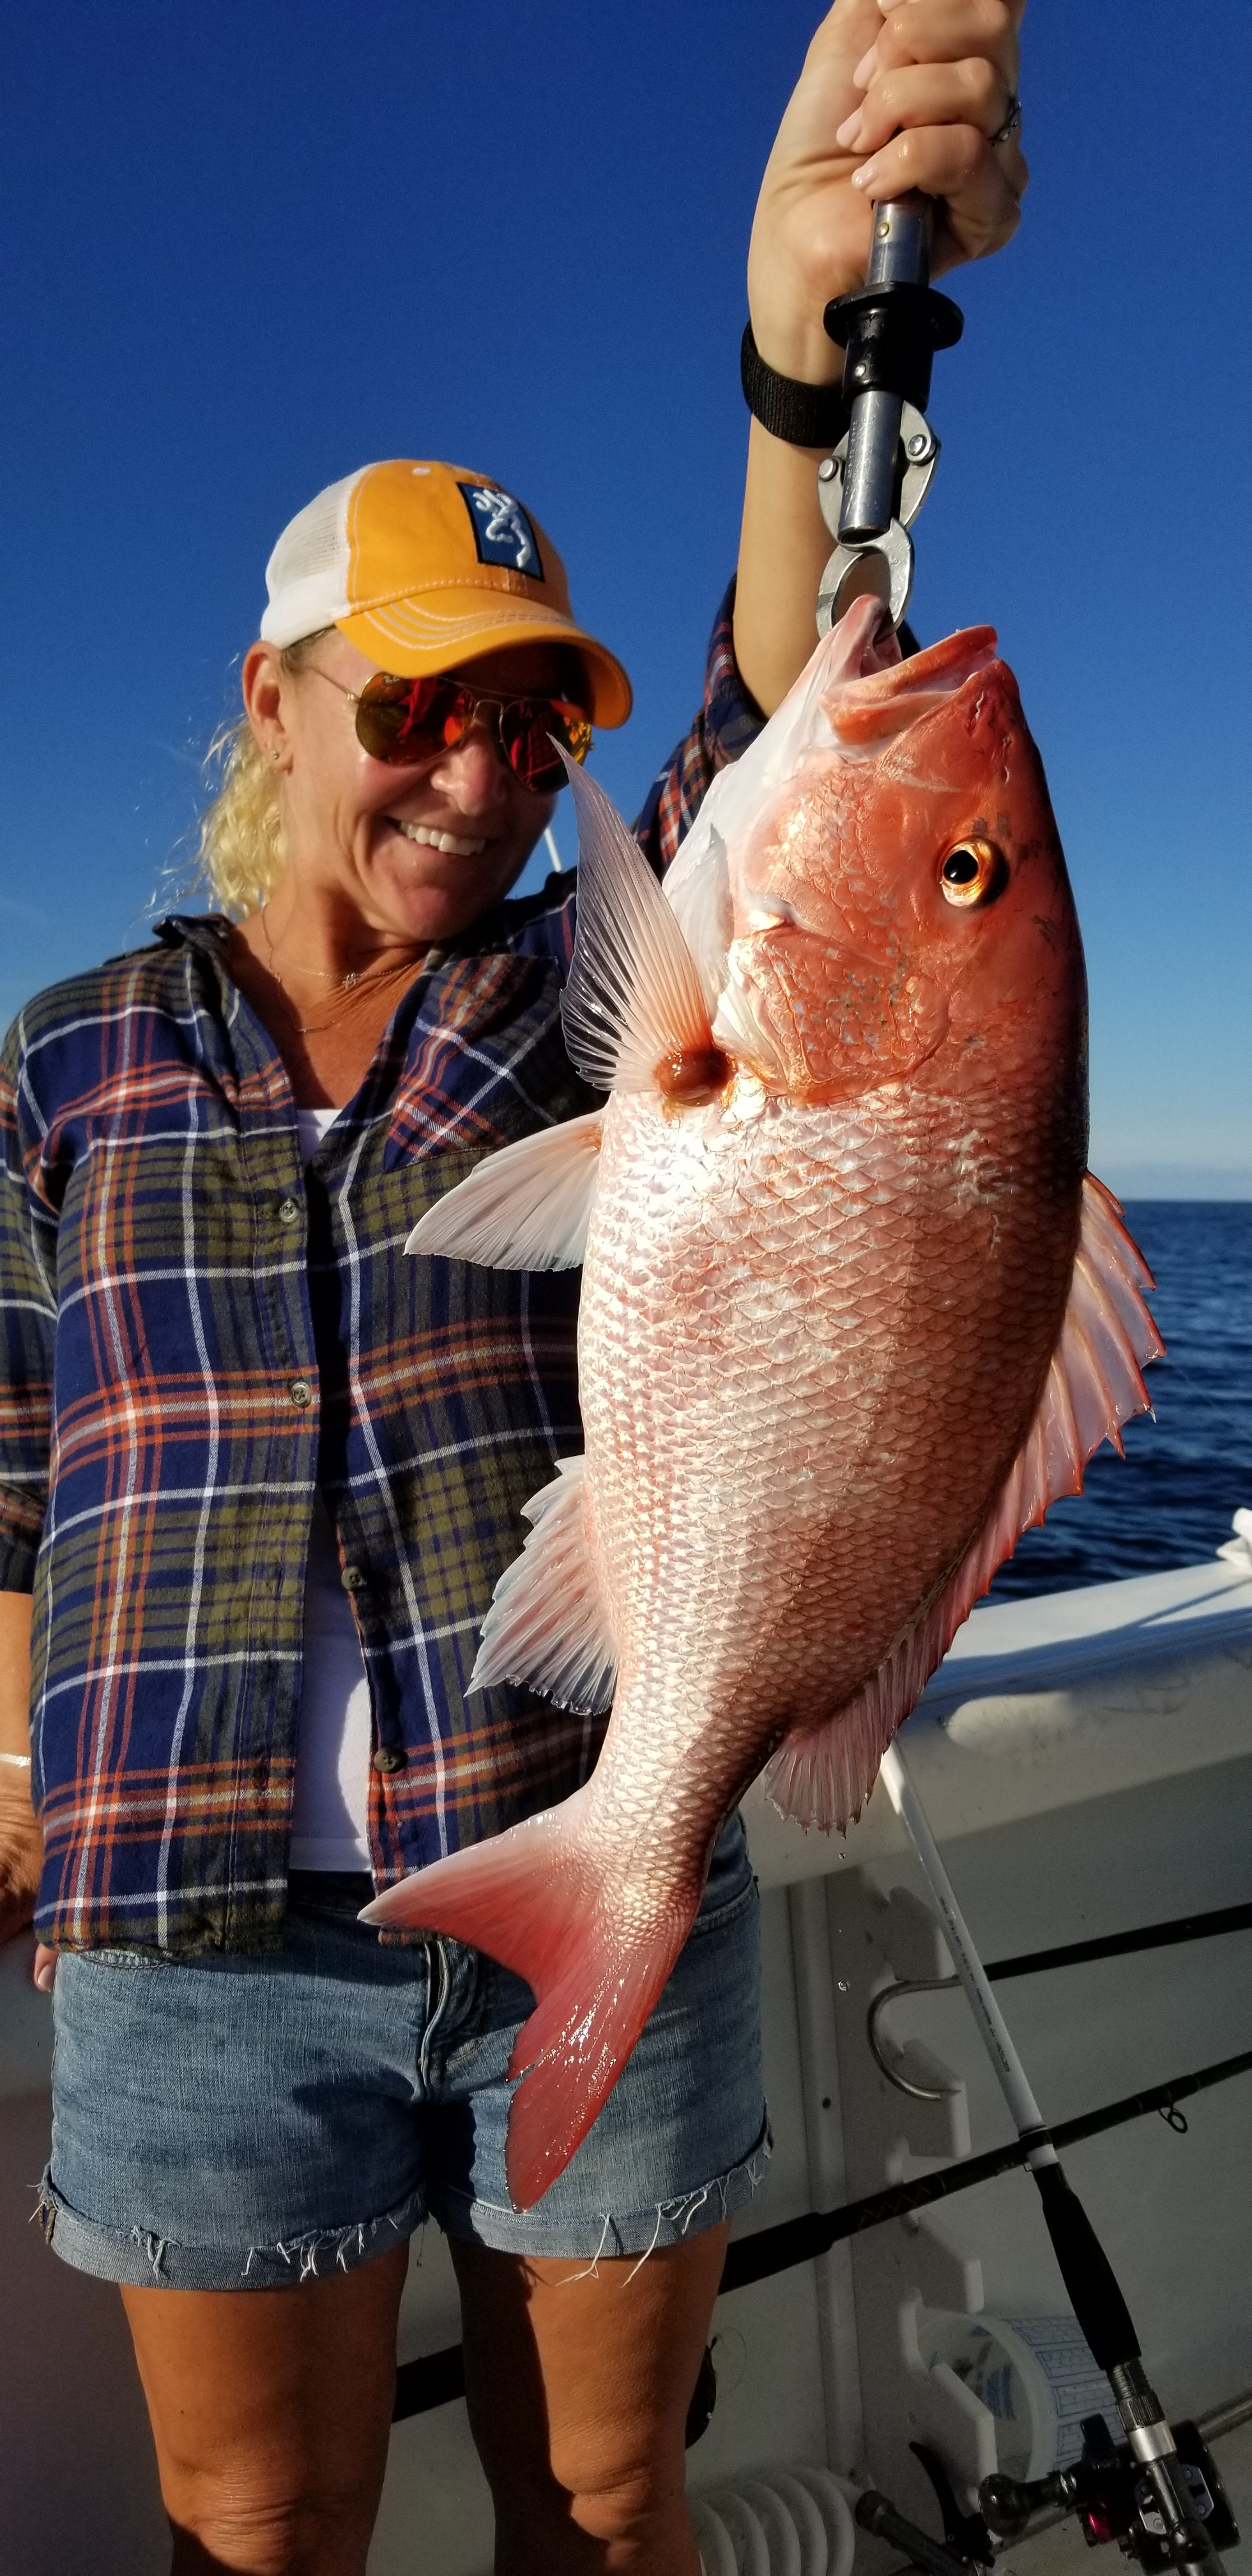 woman holding red snapper catch